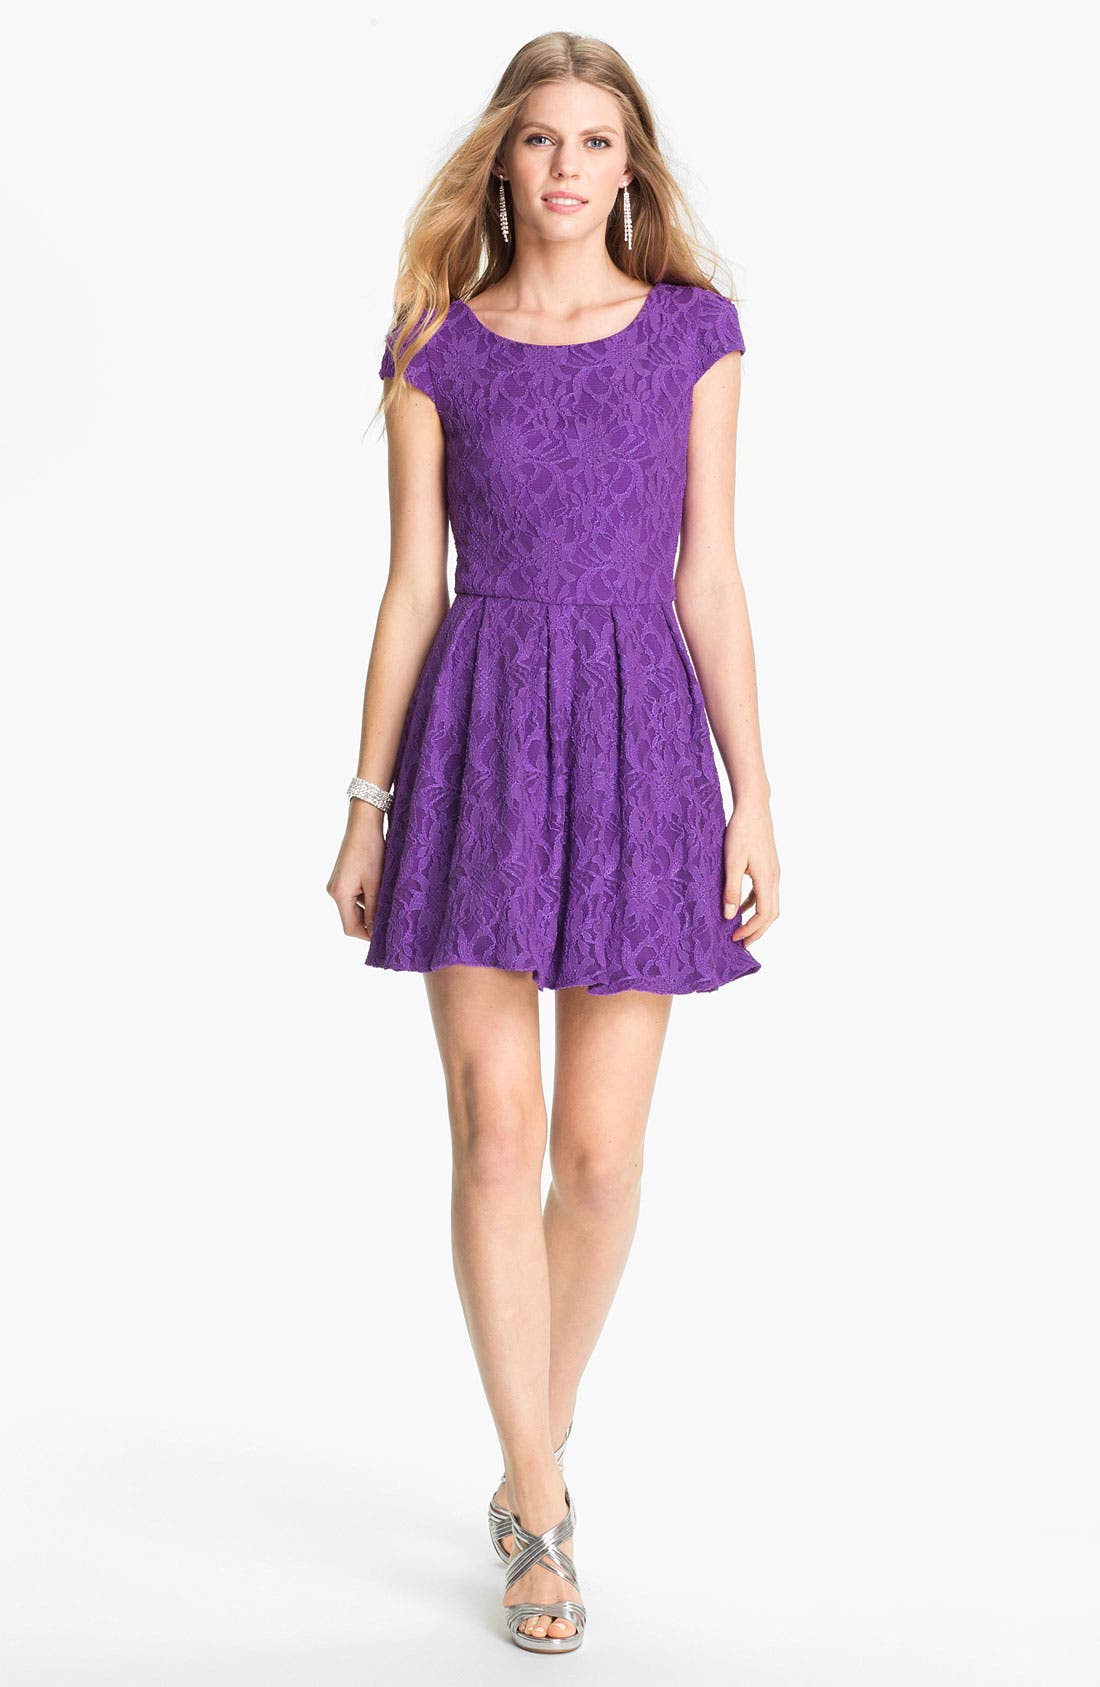 HAILEY BY ADRIANNA PAPELL Lace Fit & Flare Dress, Main, color, 500